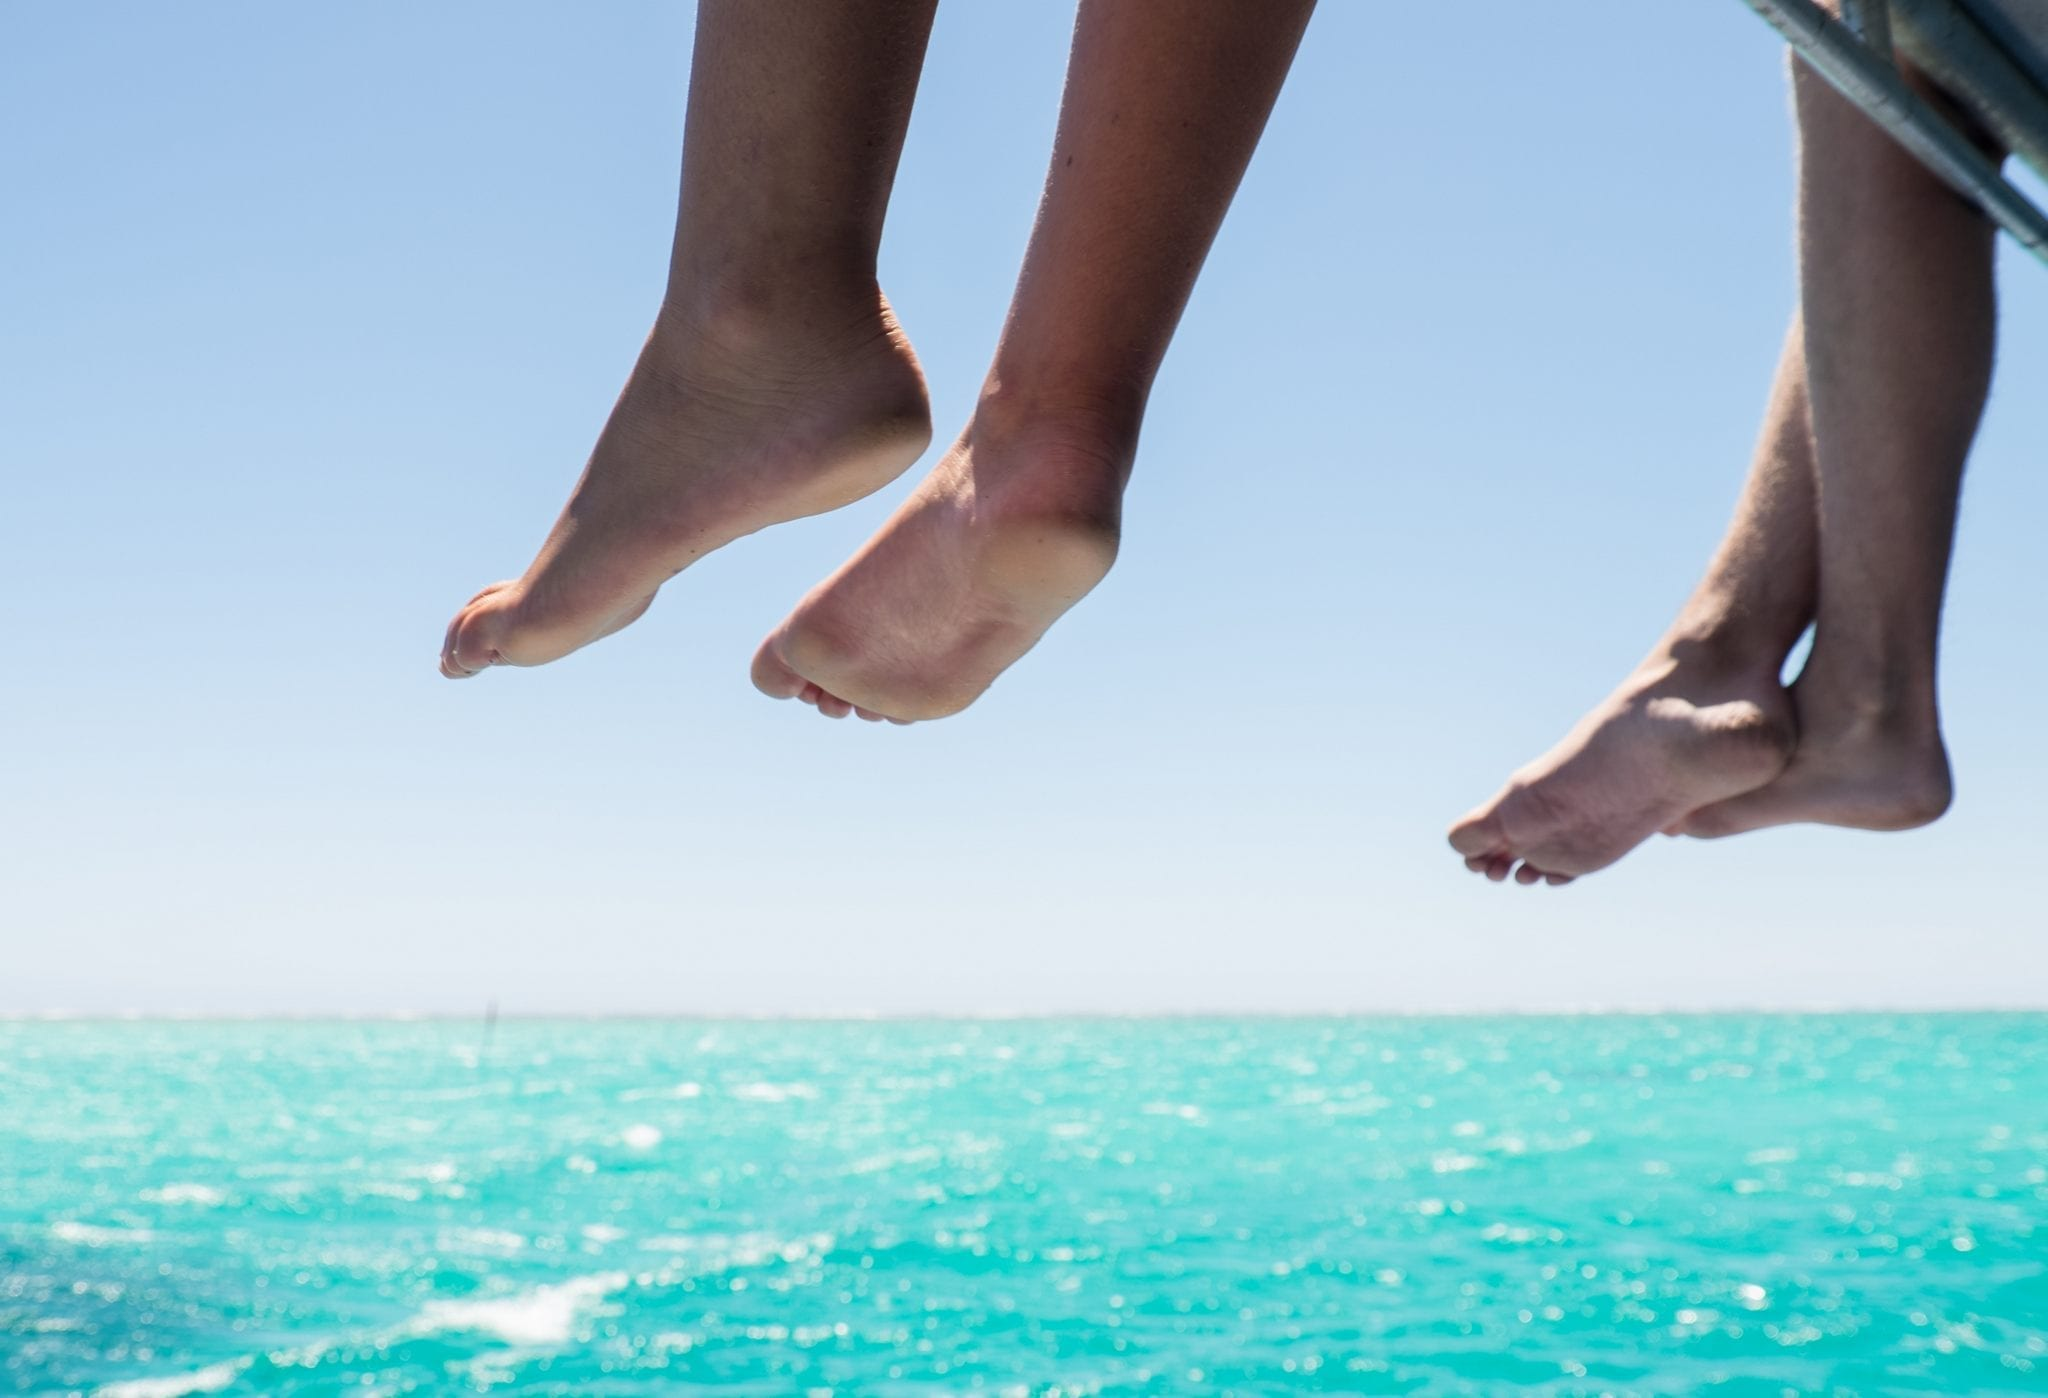 Feet in Coral Bay